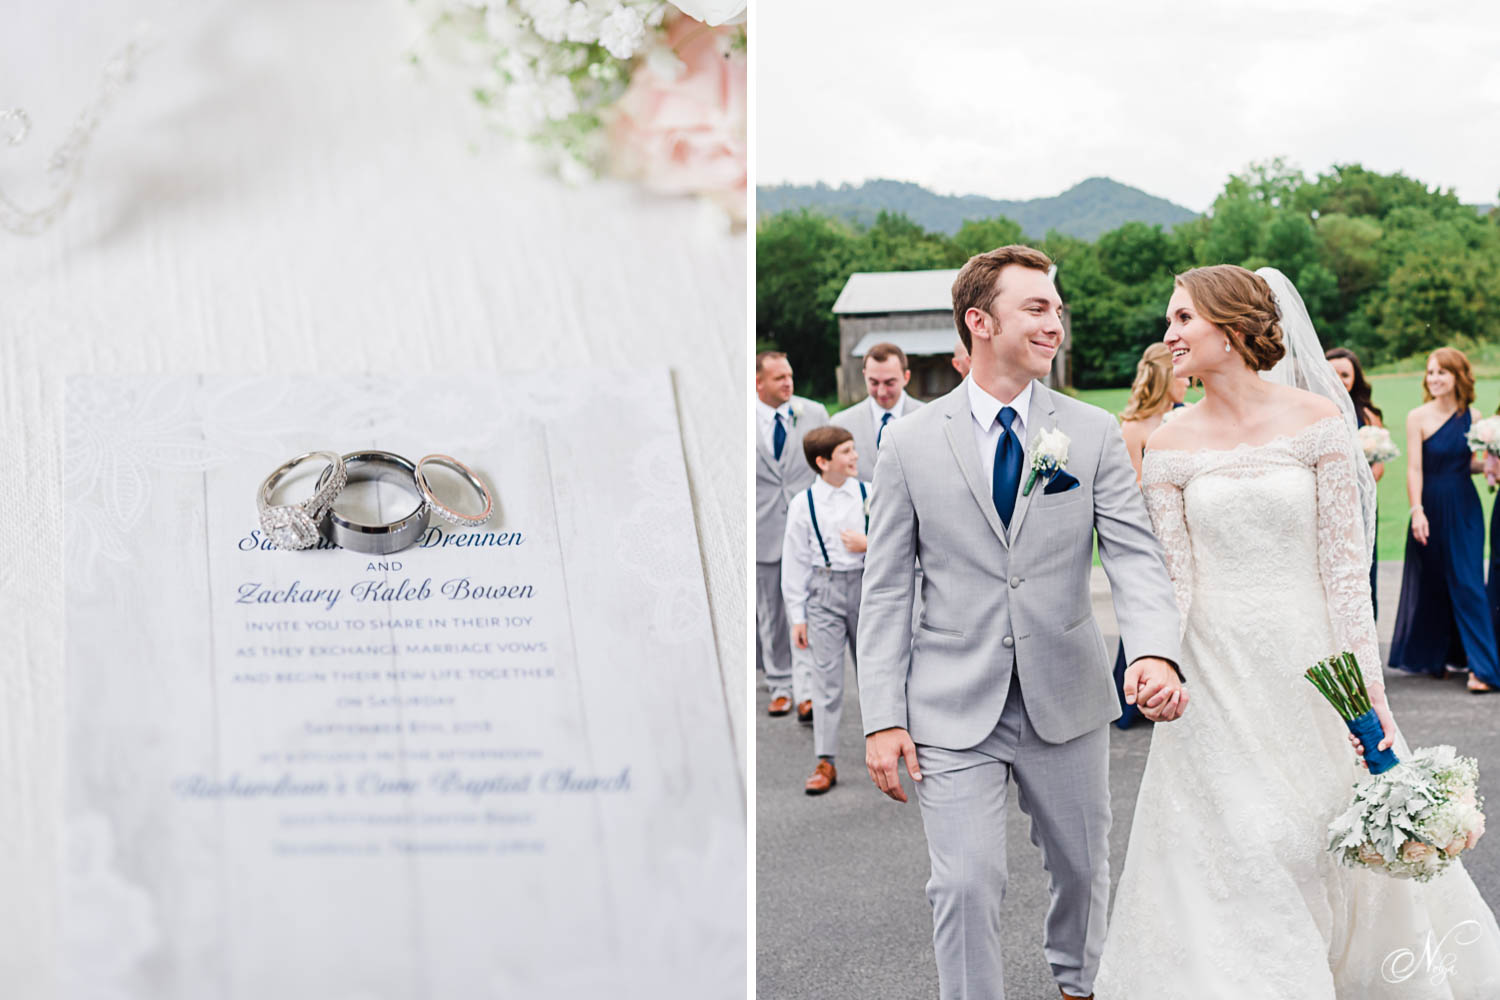 wedding rings styled on wedding invitation with pink roses in the background. And groom in gray and navy blue with his bride in an off the shoulder wedding dress in Gatlinburg TN